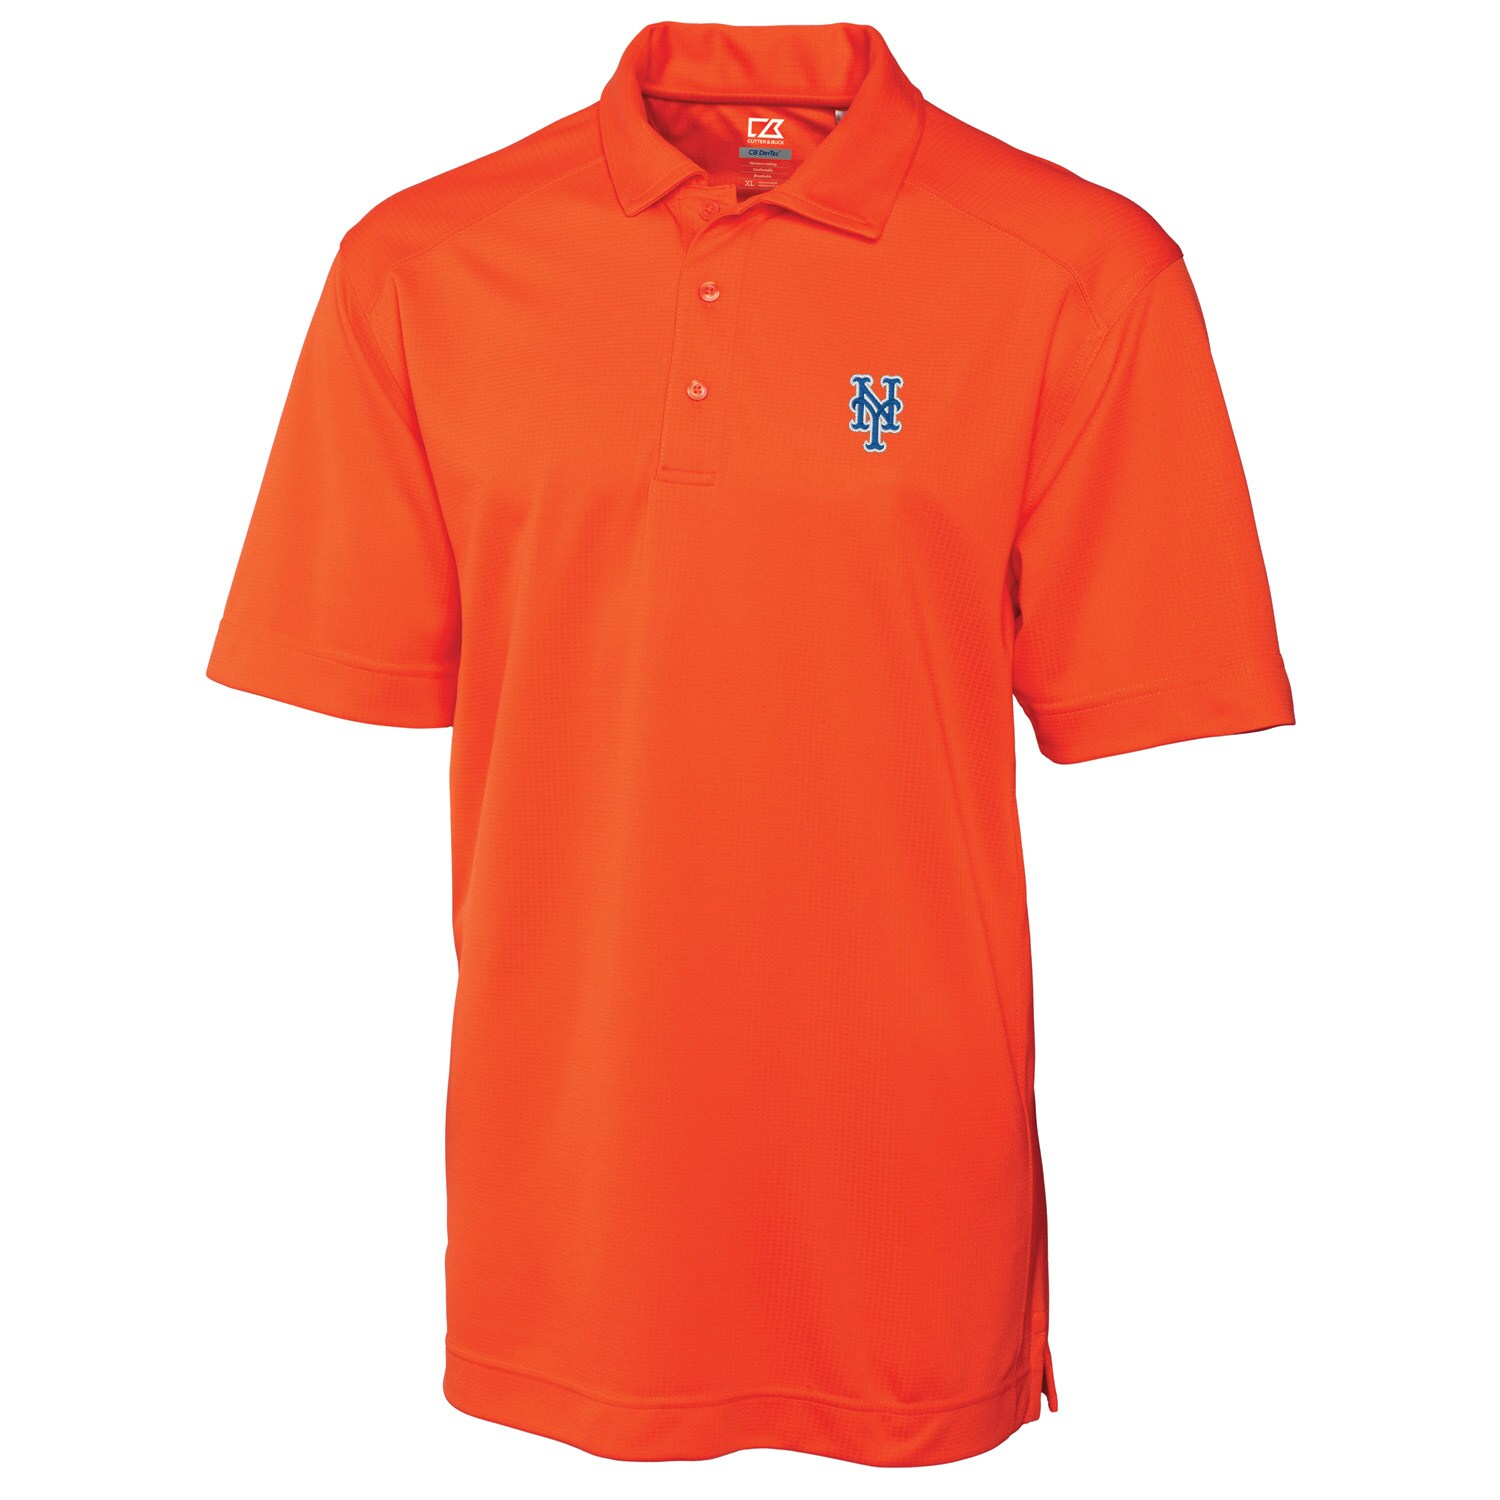 New York Mets Cutter & Buck Big & Tall DryTec Genre Polo - Orange